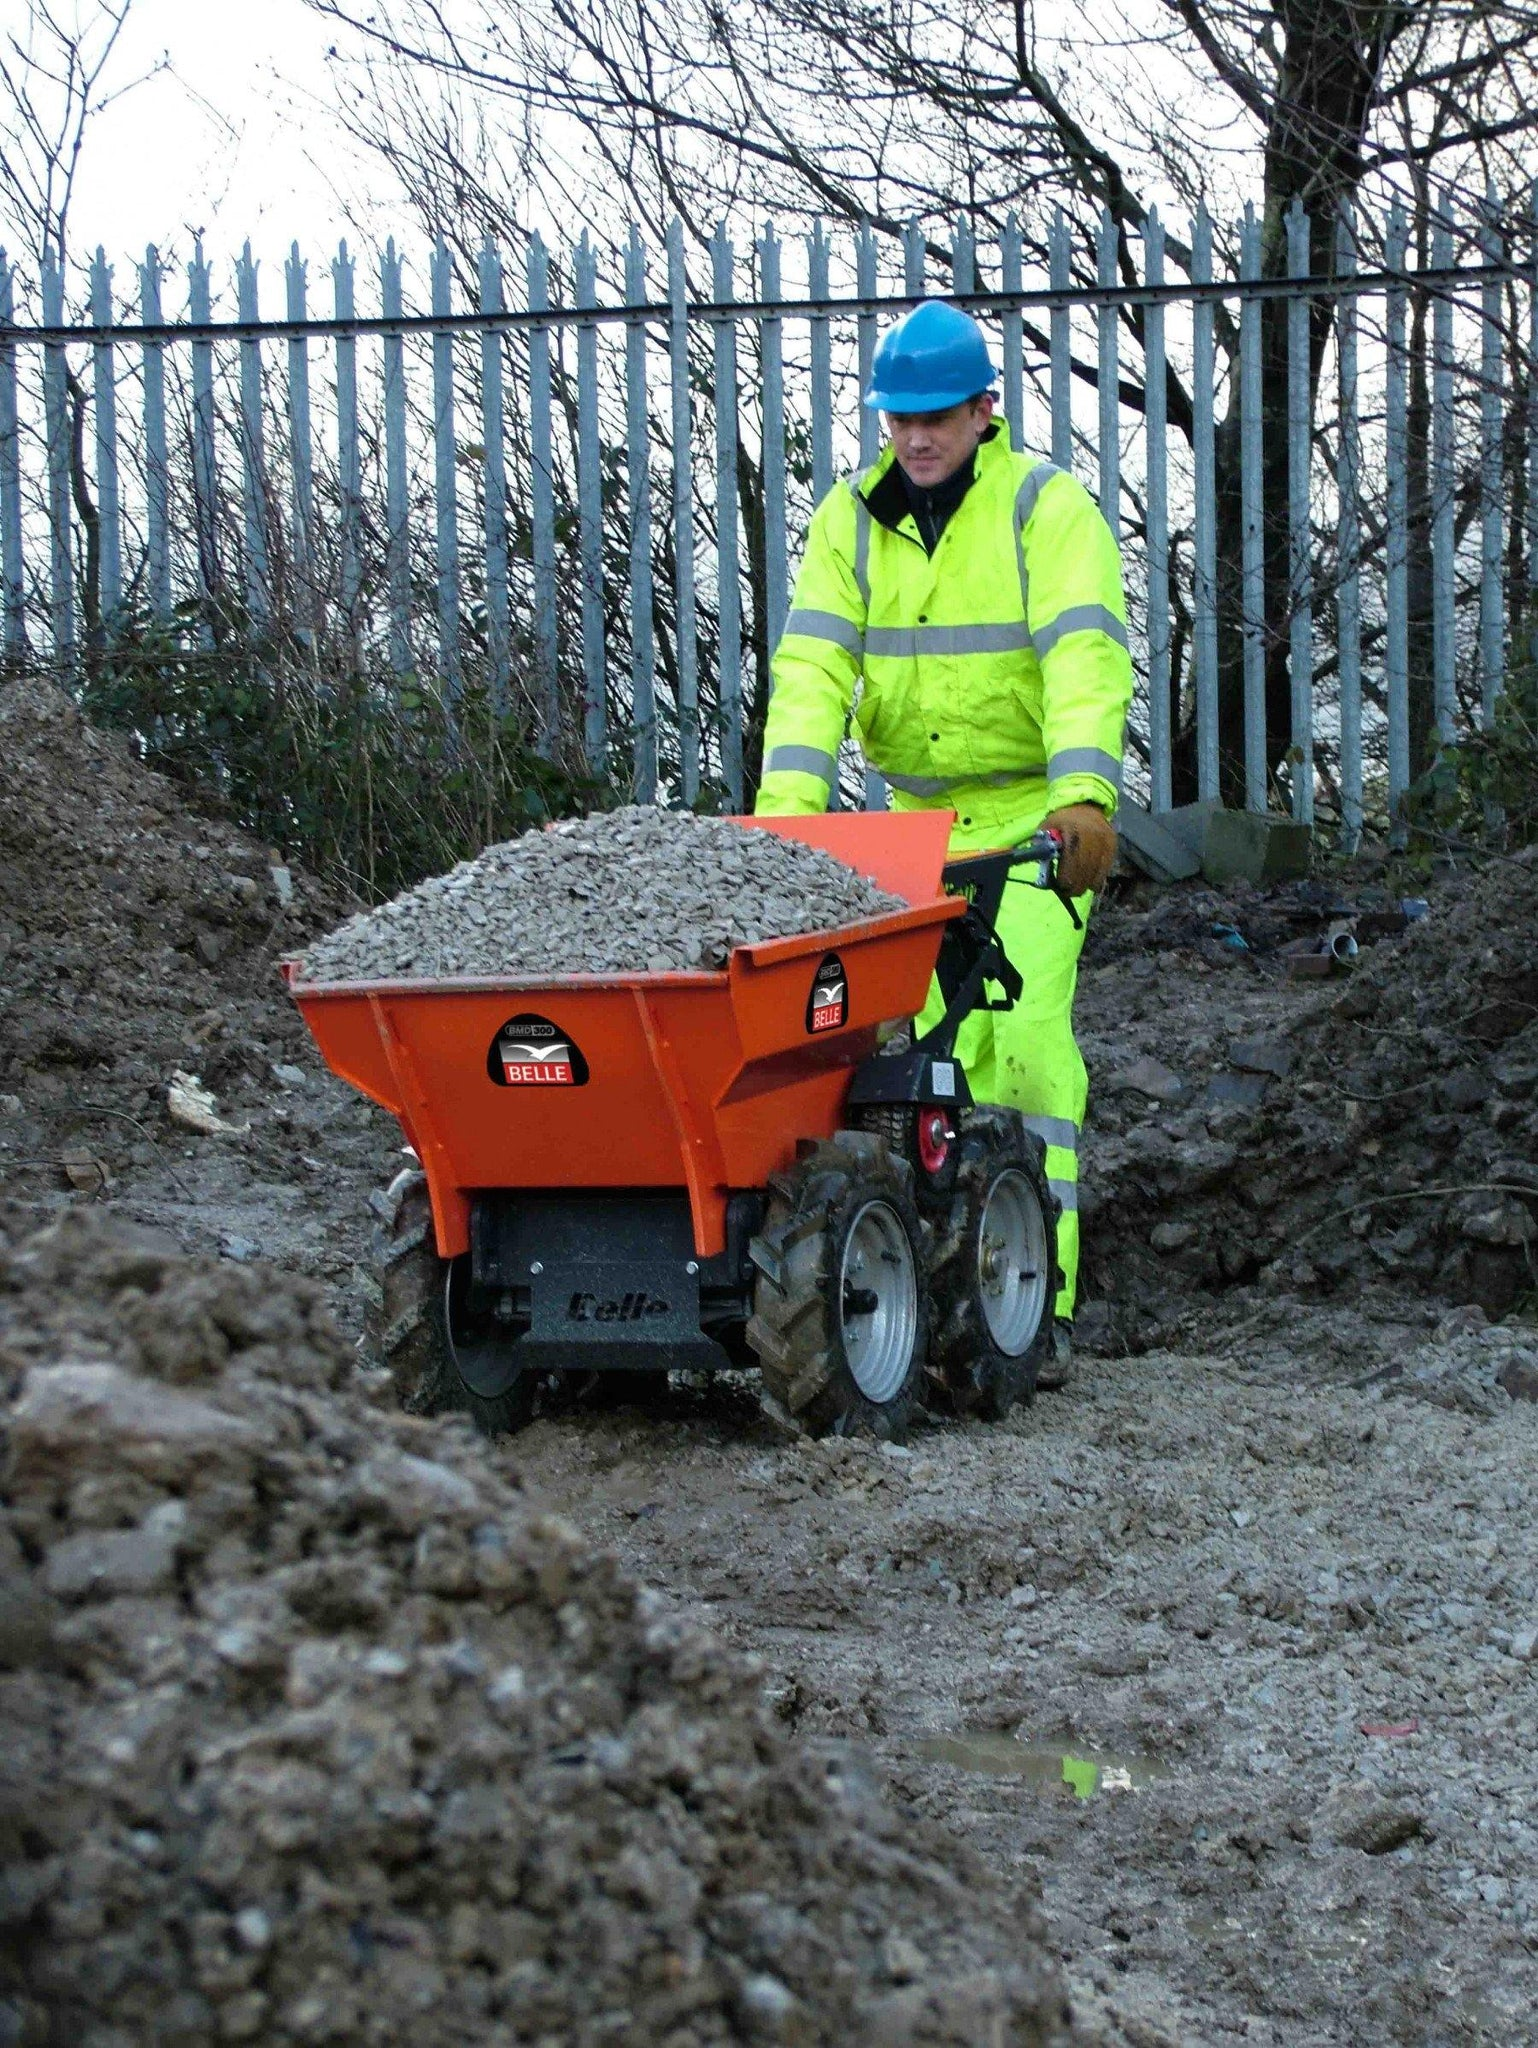 Belle BMD300 300kg payload Heavy Duty 4x4 Mini Wheeled Dumper Power Barrow